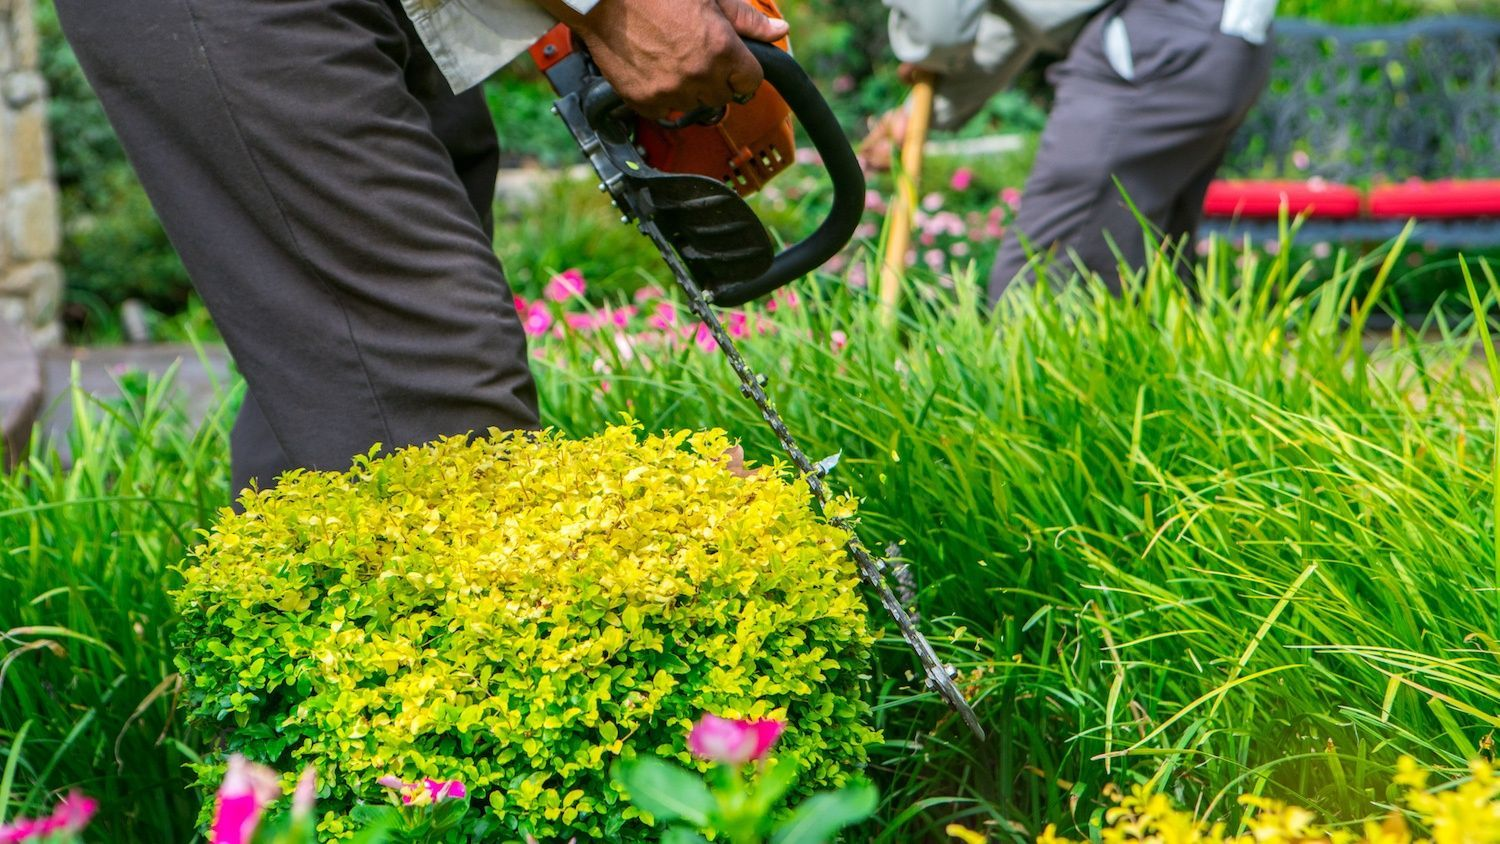 7 Questions You Can Expect During a Landscaping Job Interview